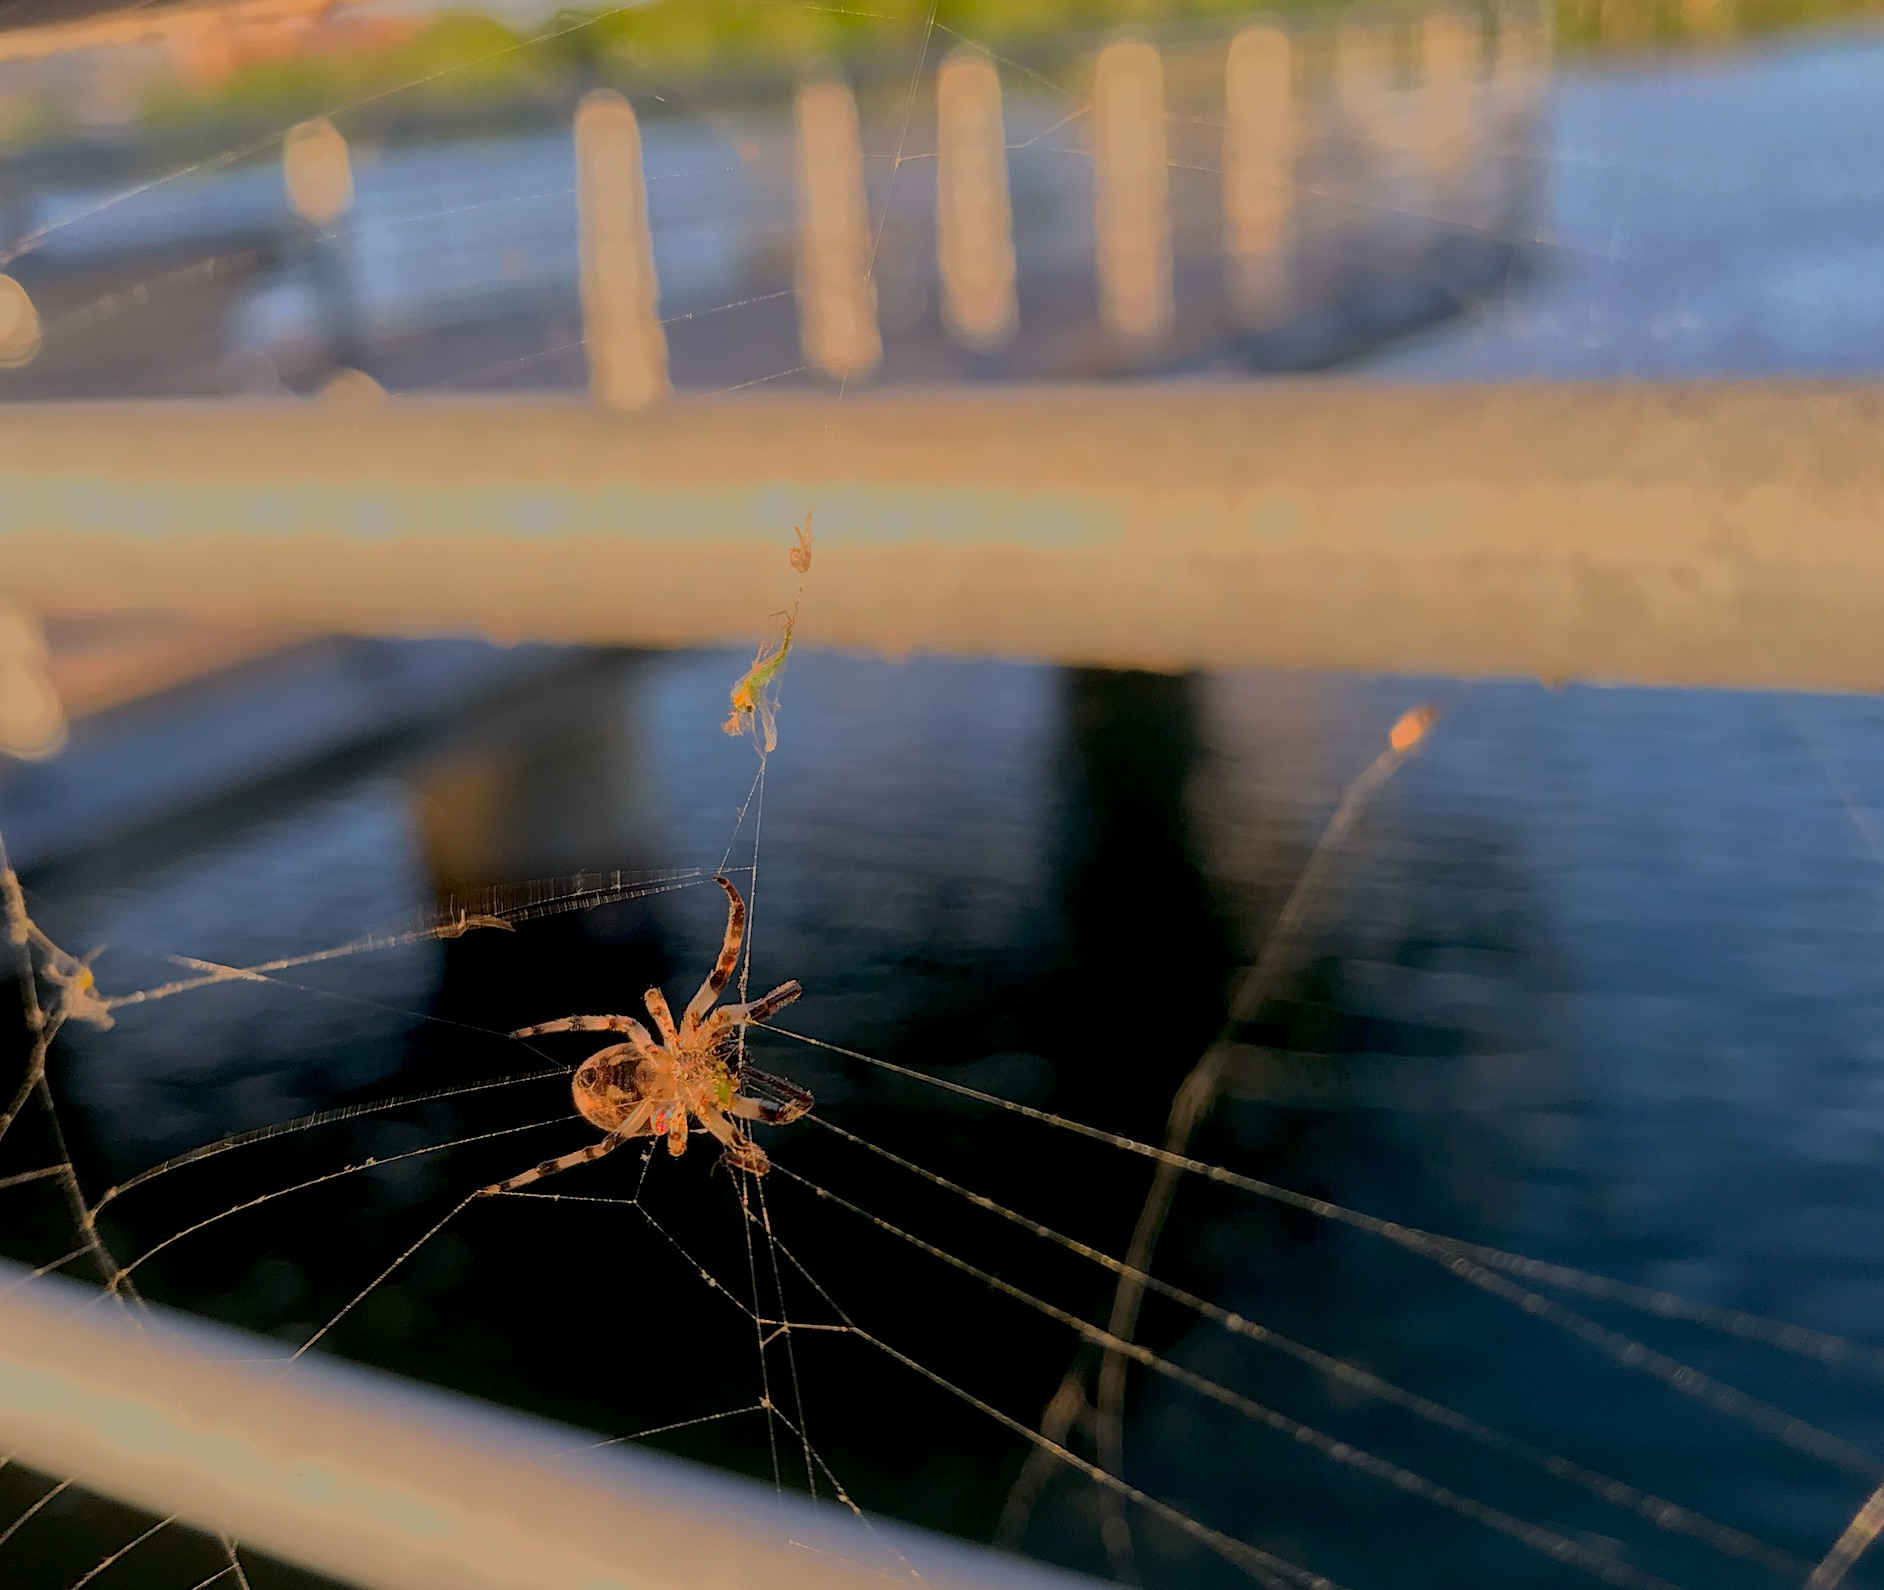 Big Spider in a web hanging from a rail with river in background